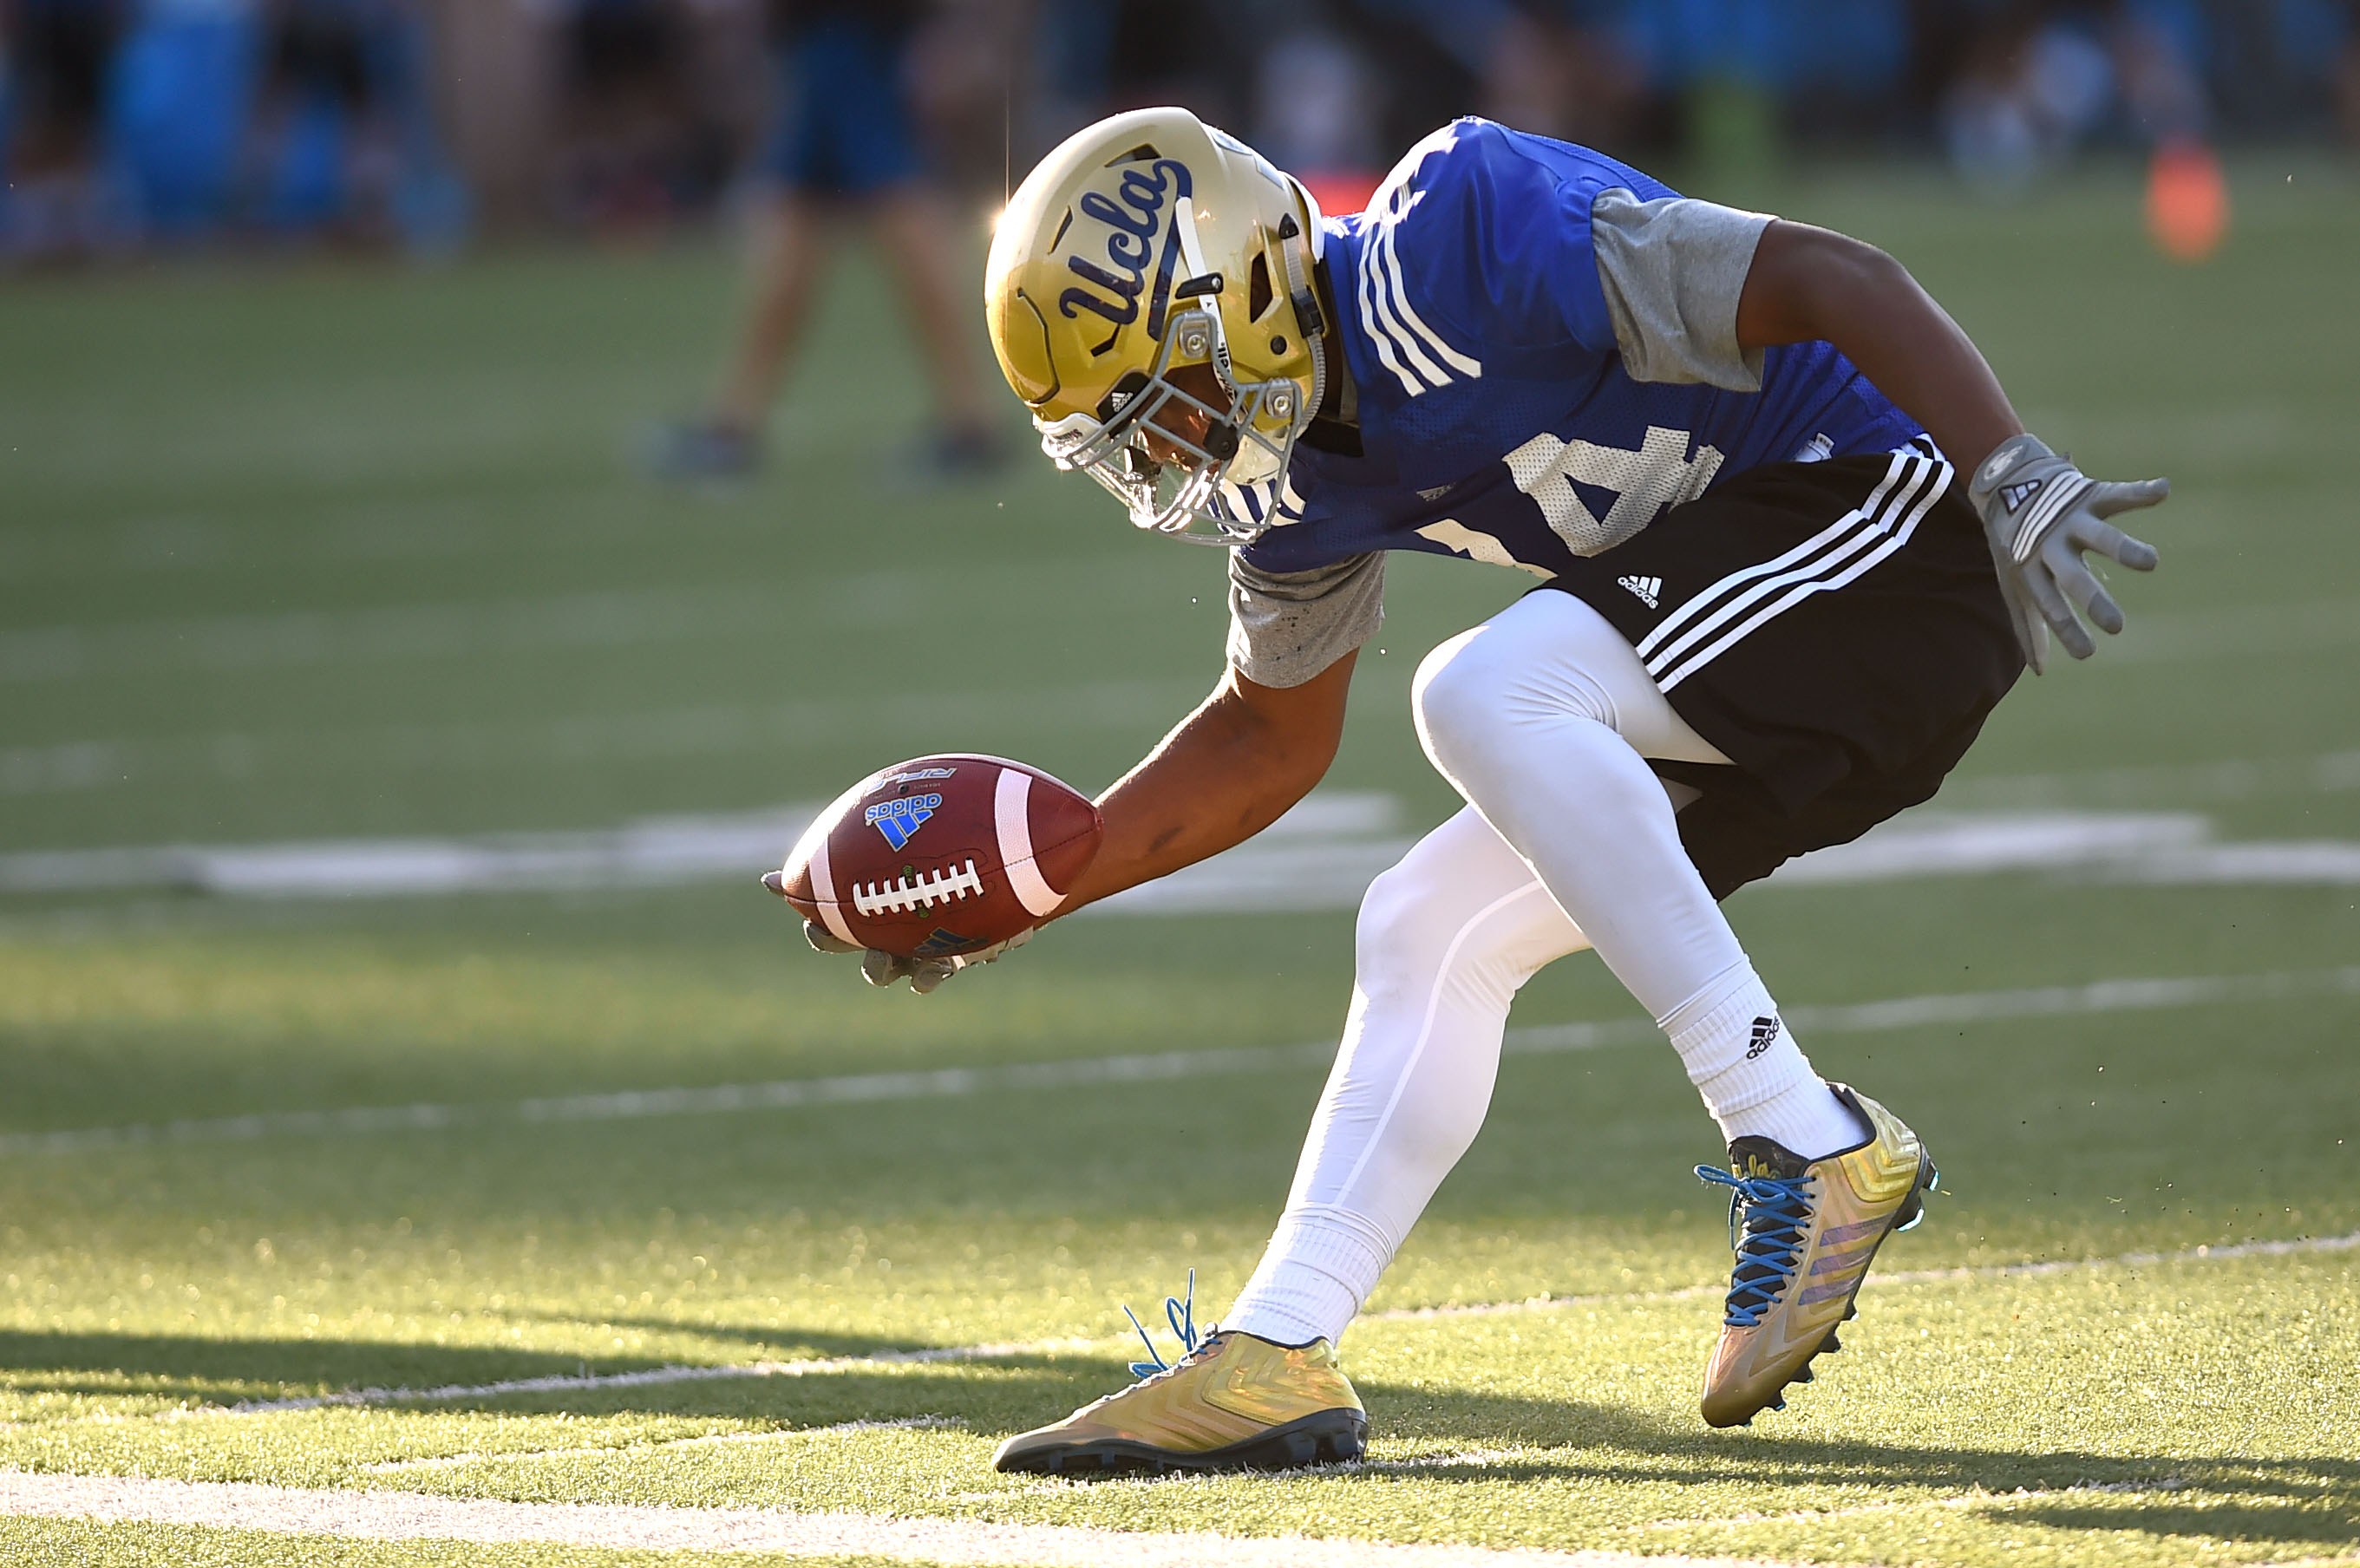 UCLA's Mossi Johnson catches a pass during spring football practice on April 2 at Spaulding Field.(Andy Holzman/Staff)